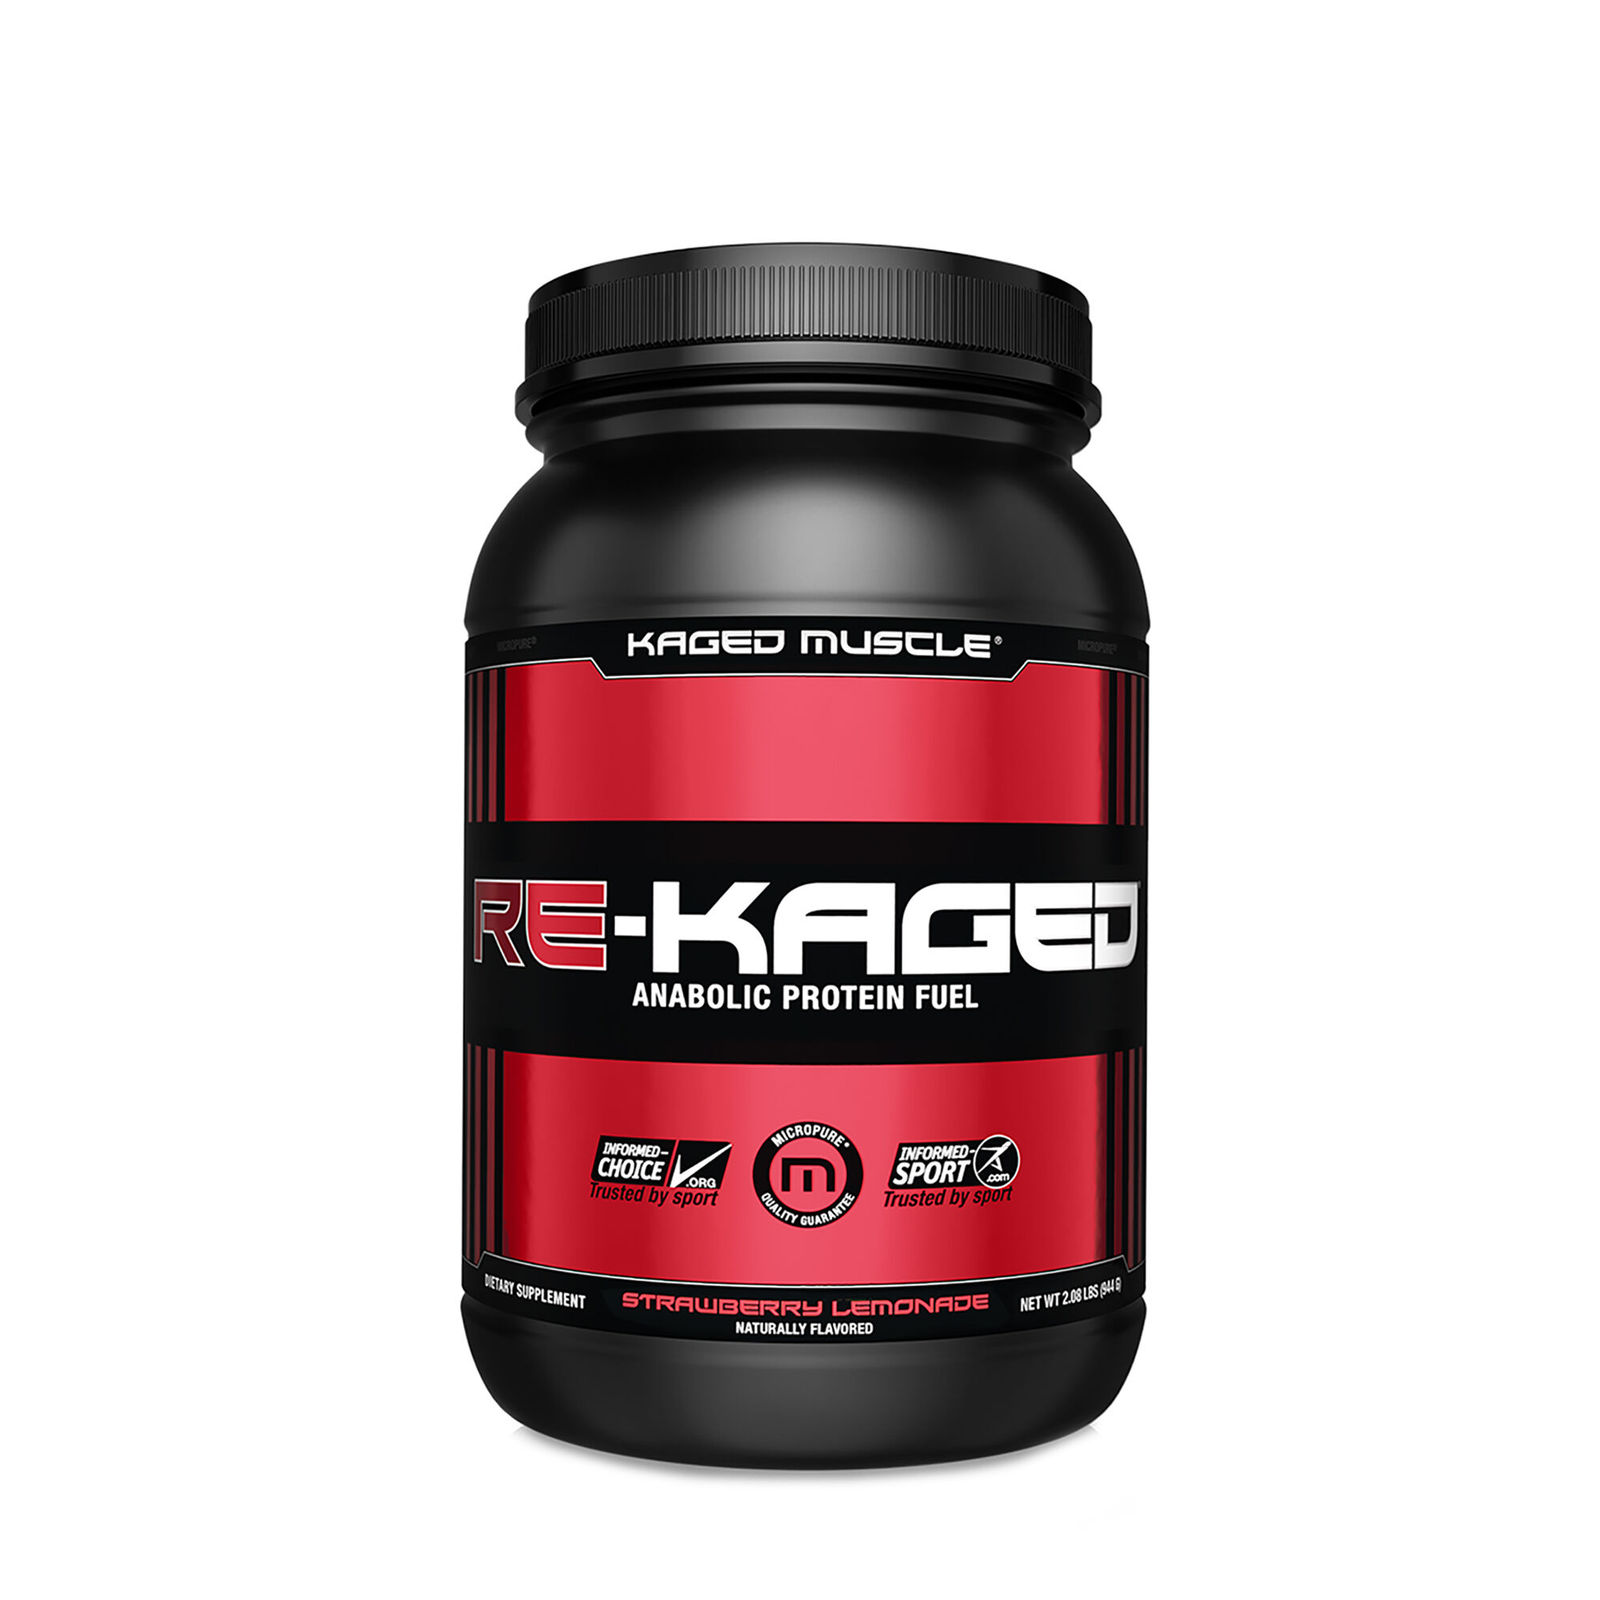 KAGED MUSCLE RE-KAGED Anabolic Protein Fuel STRAWBERRY LEMONADE net.wt. 2.08lbs. - $39.99